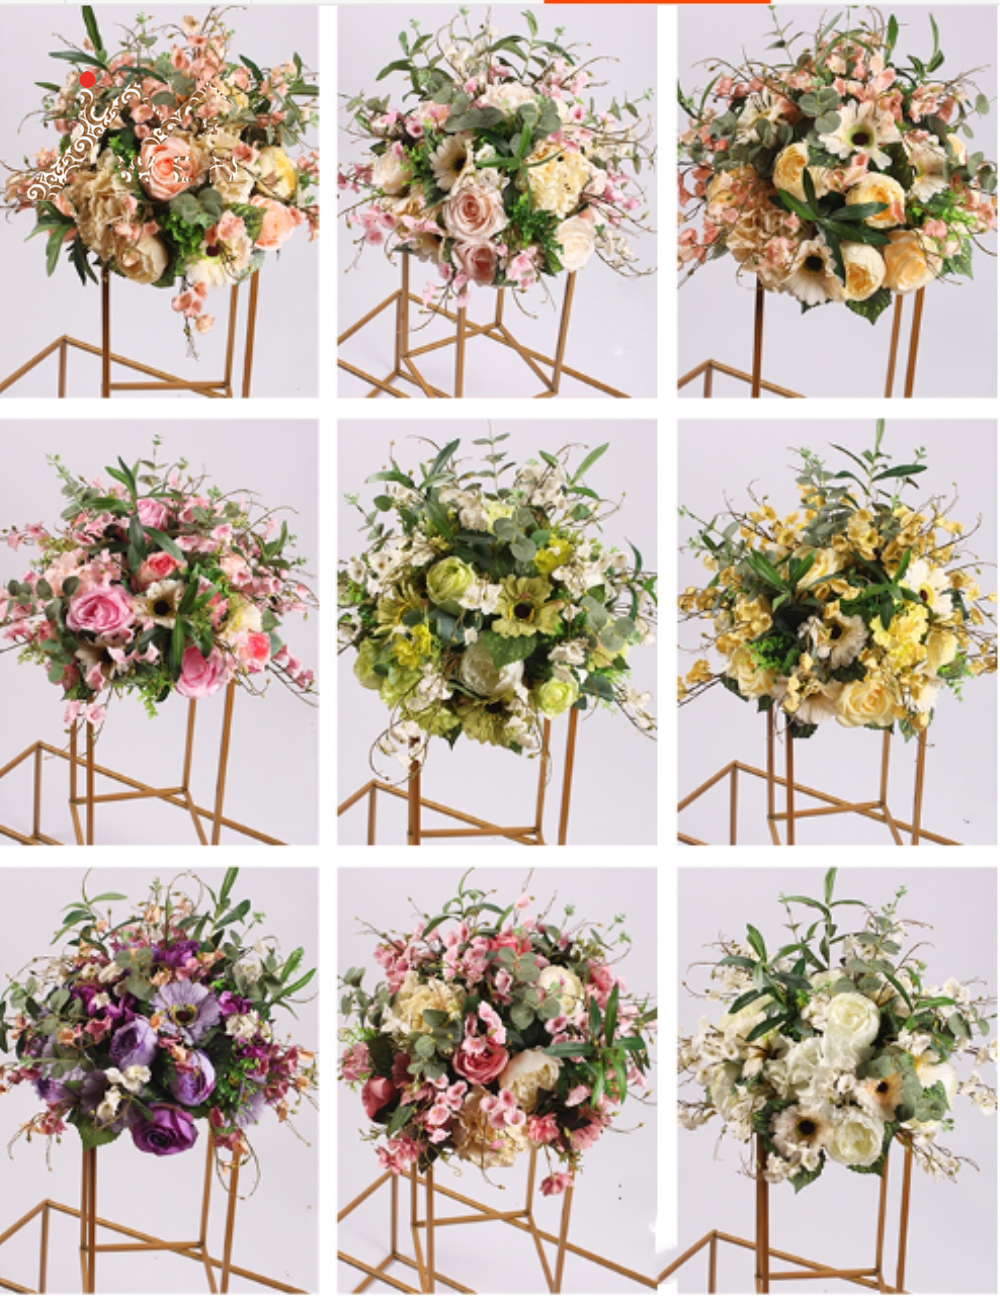 Silk Flower Ball Flower Rack For Wedding Centerpiece Home Room Decoration Party Supplies DIY Road Lead Craft Flower 9 Color